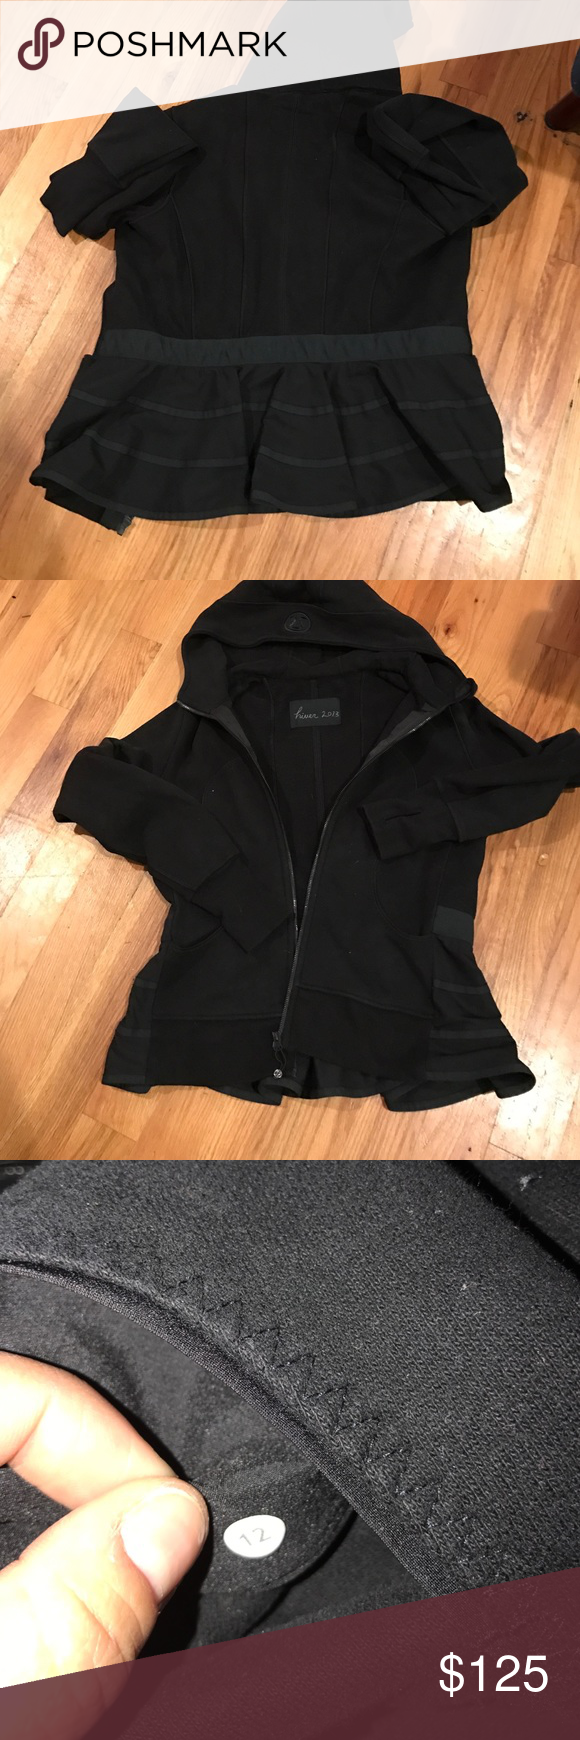 Lululemon peplum zip up size 12 Circa 2013 black lululemon sz 12 peplum hoodie.  Purchased on eBay and way too big on me.  Thought this was a size 8 and tag says 12 lululemon athletica Sweaters Cardigans